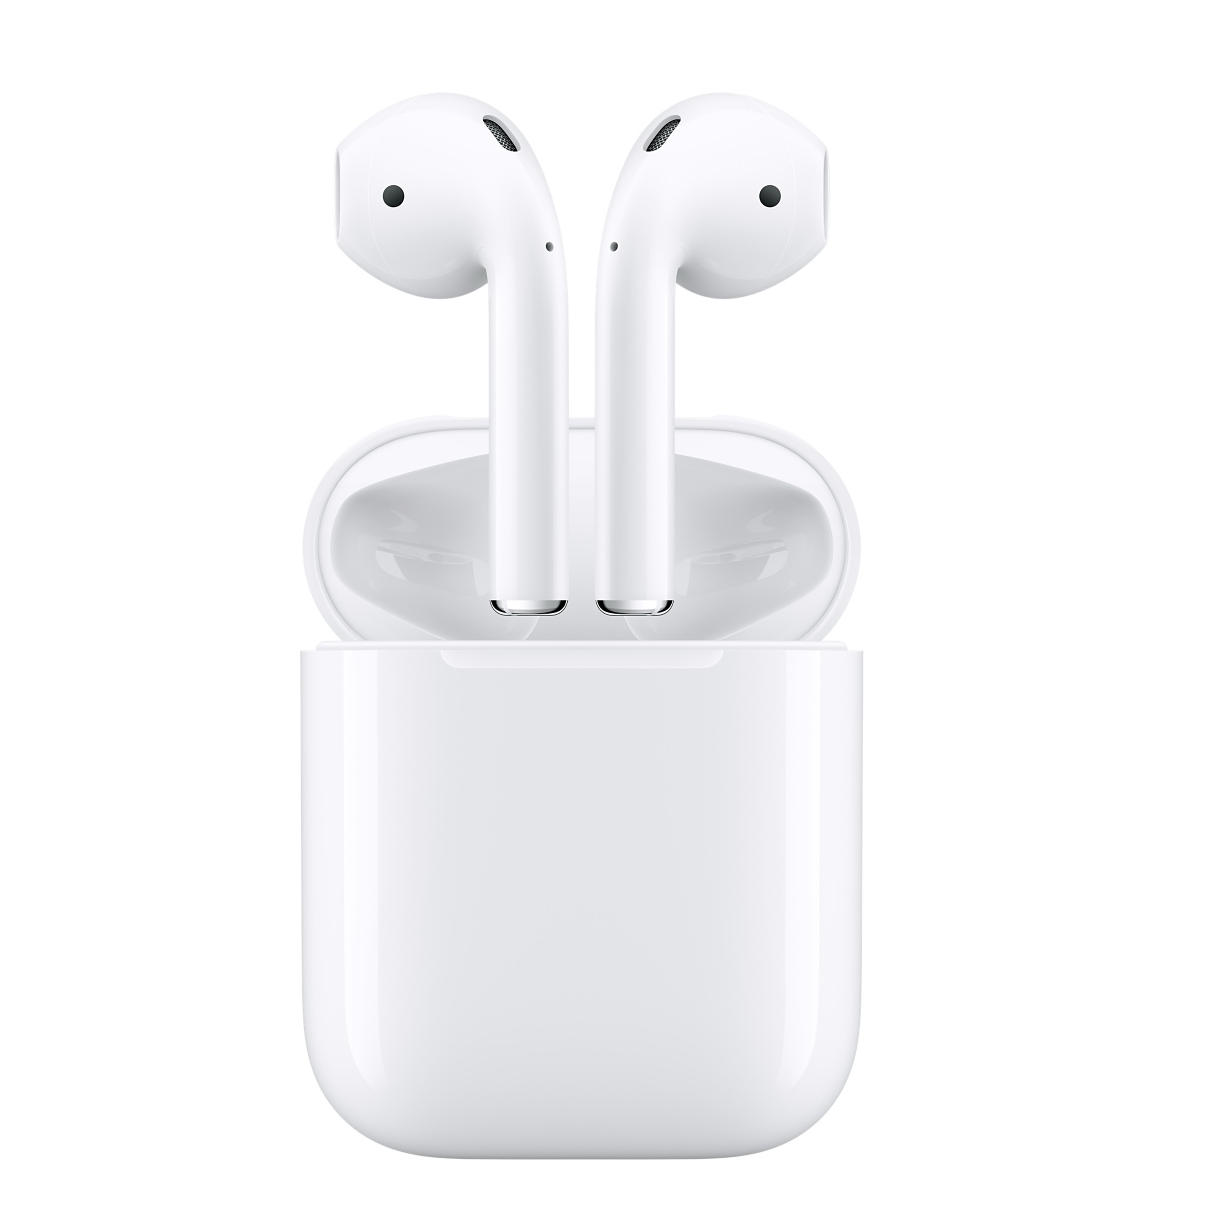 Apple AirPods - $219 CAD